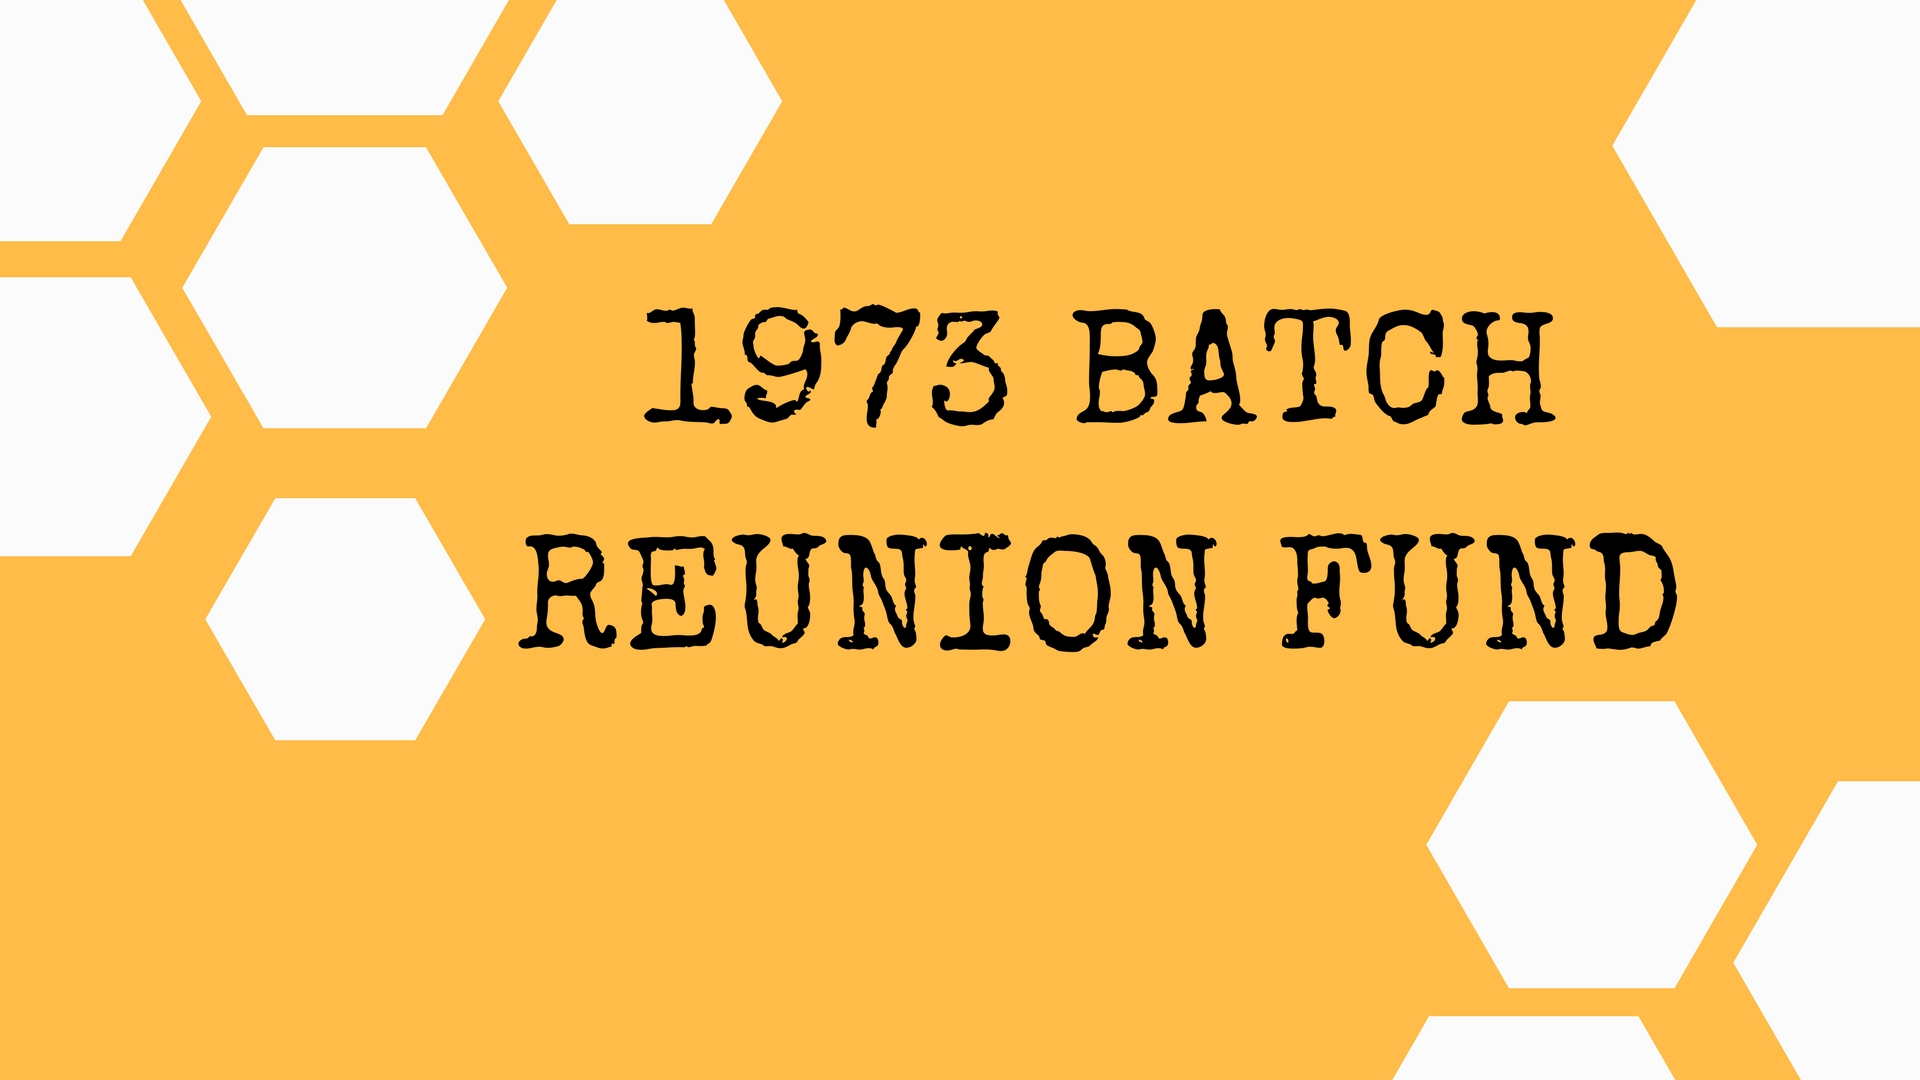 1973 Batch Golden Jubilee Reunion fund